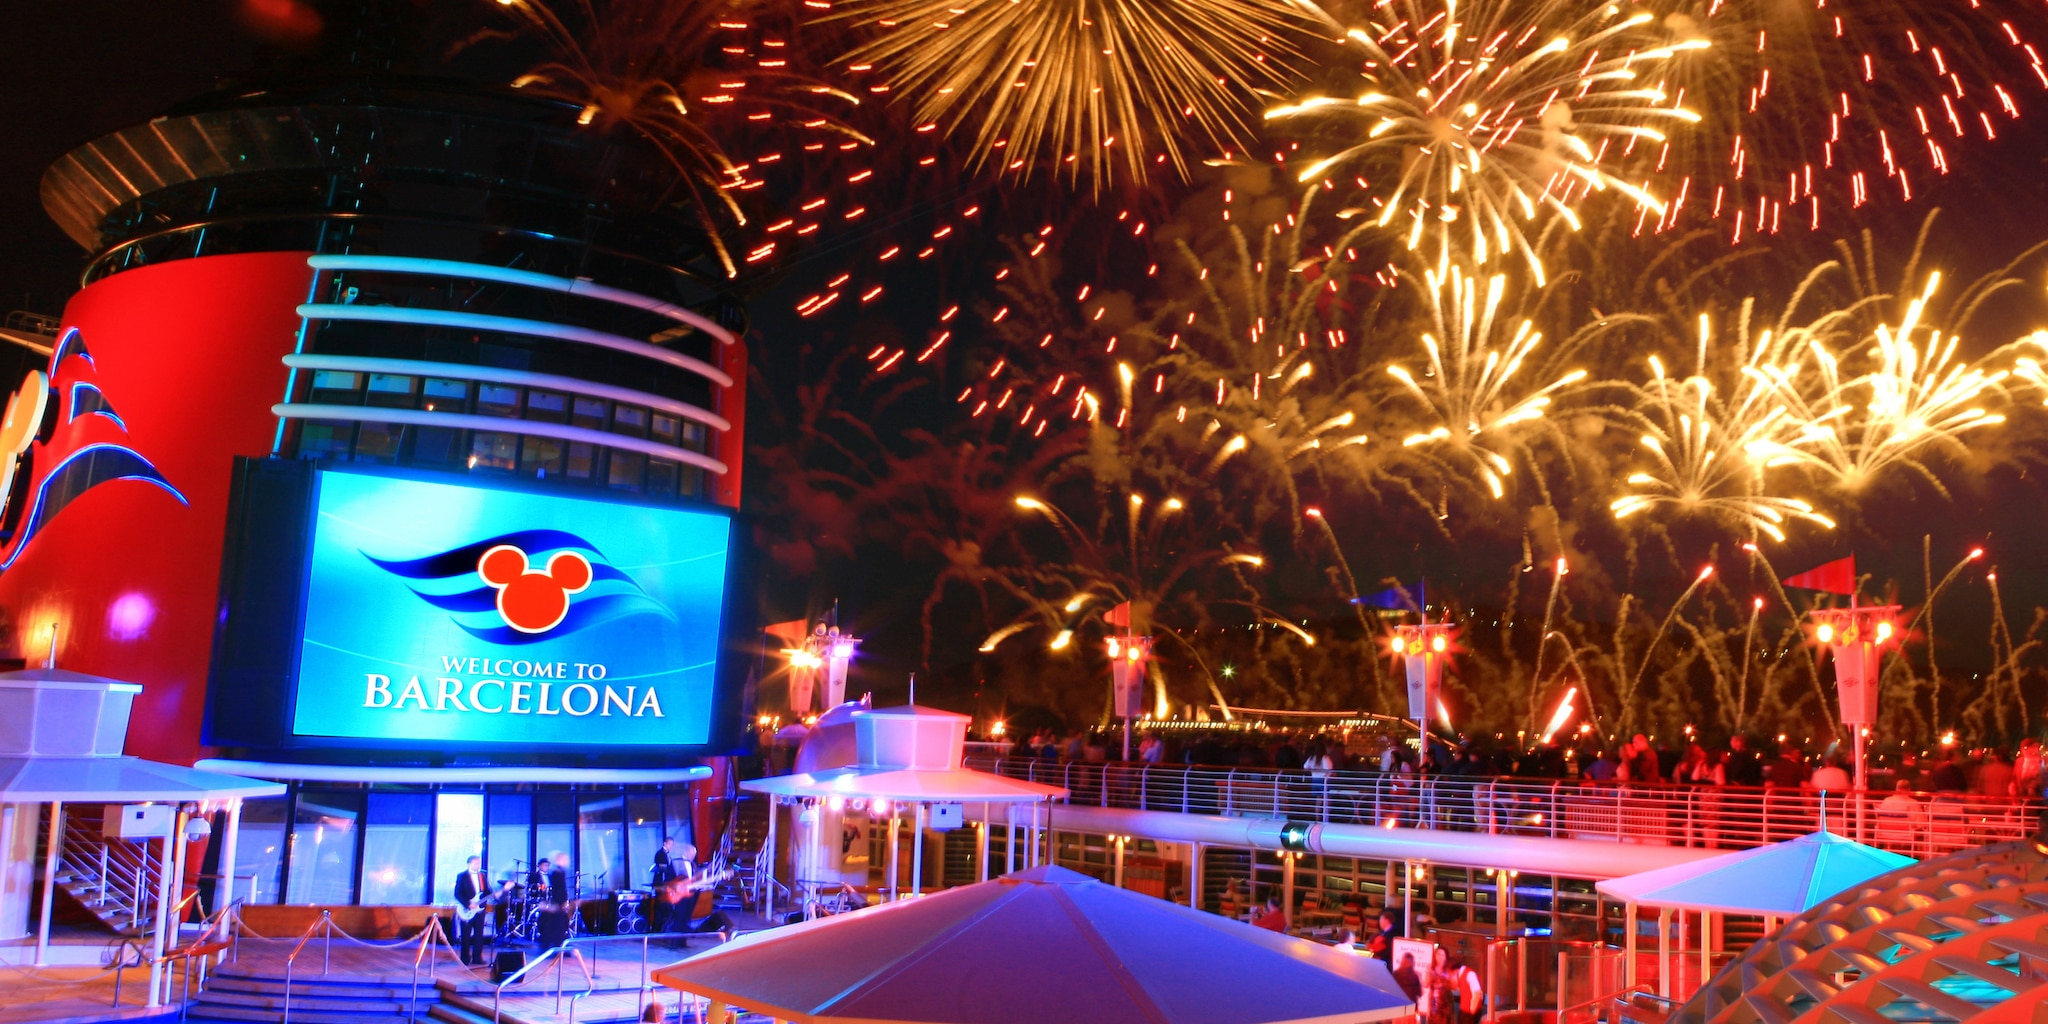 Fireworks light up the sky over the Disney Magic